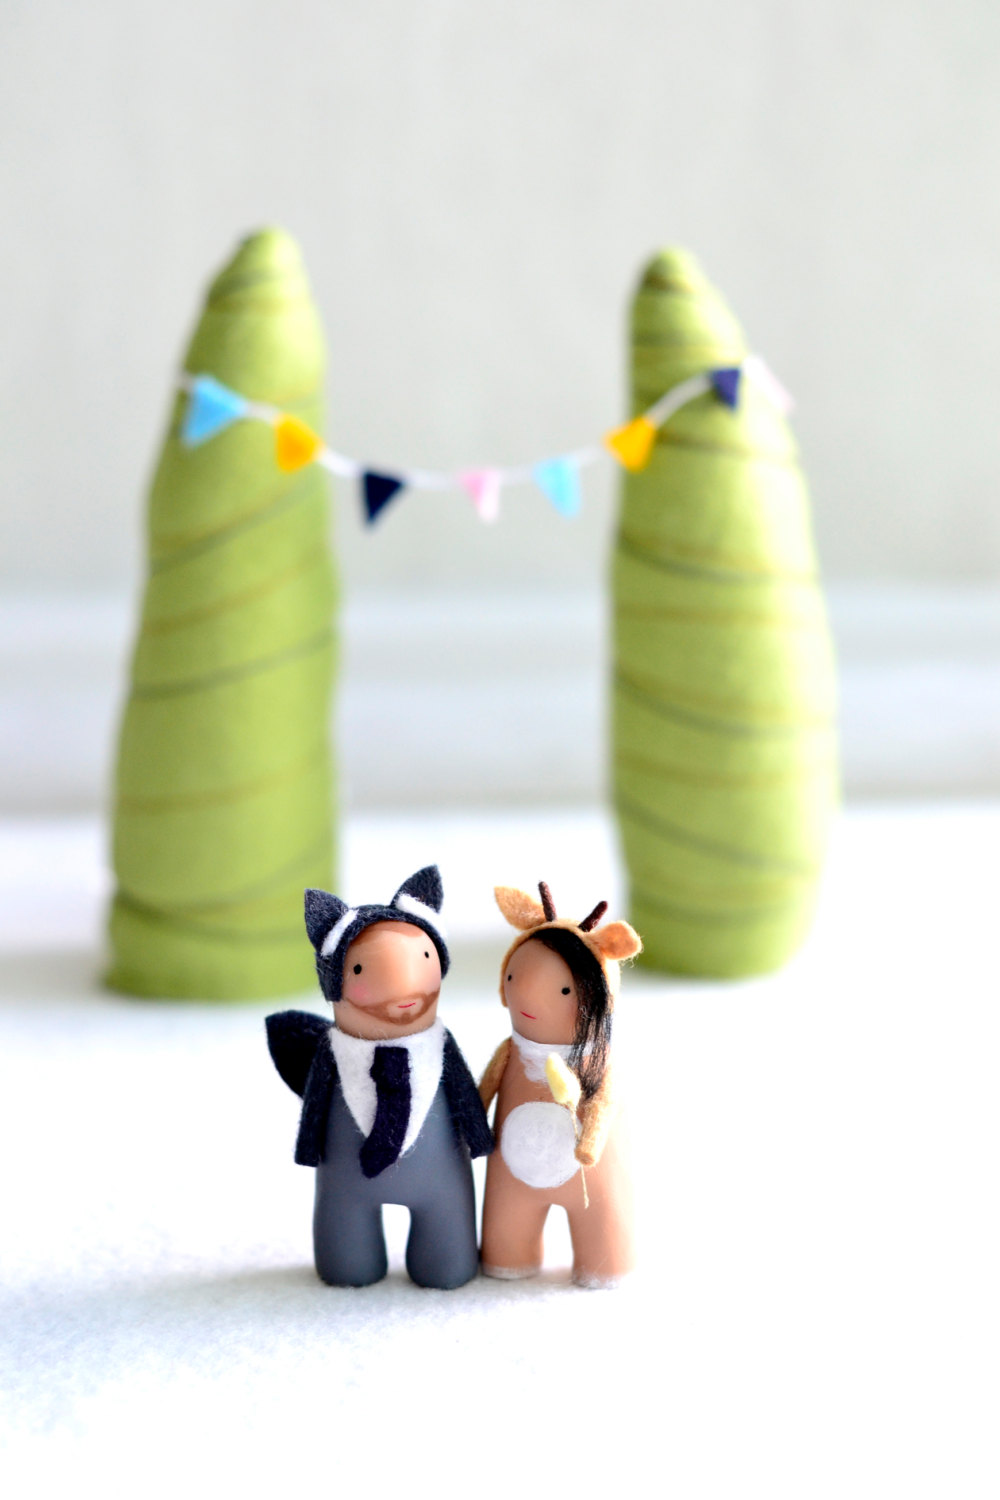 Cute-custom-wedding-cake-toppers-by-royalmint-3.original